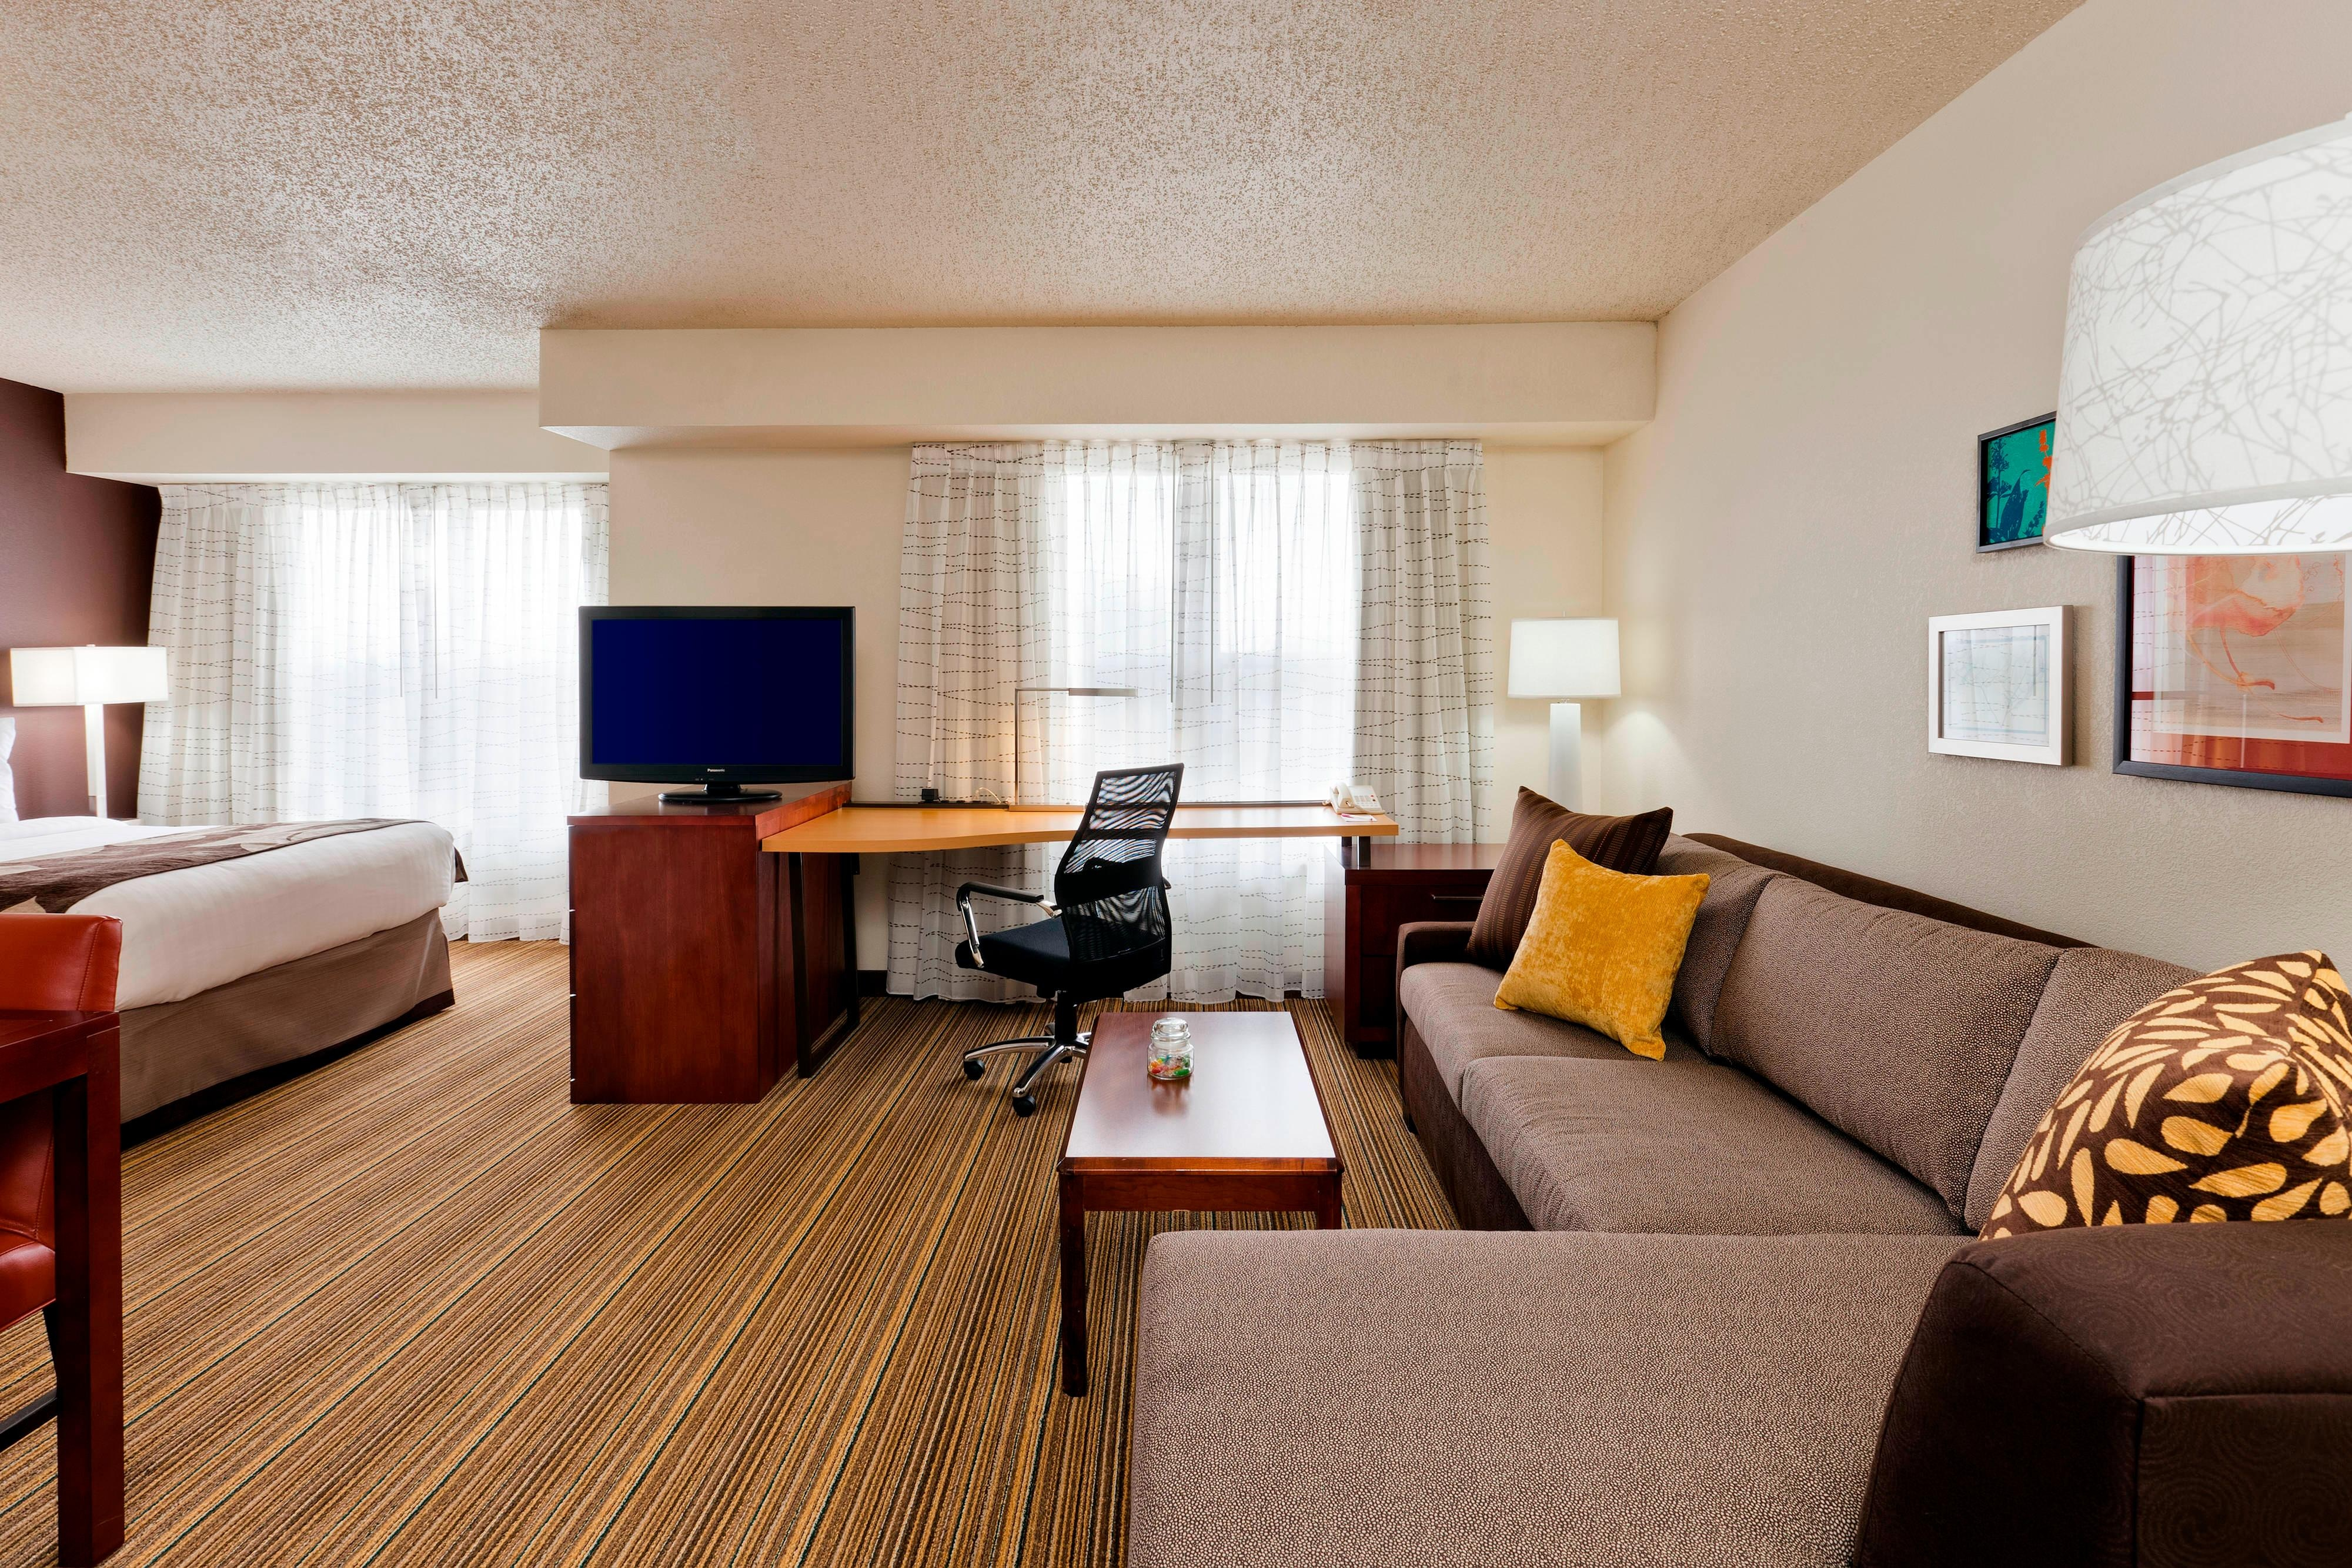 extended long term stay hotel in merrillville indiana rh marriott com